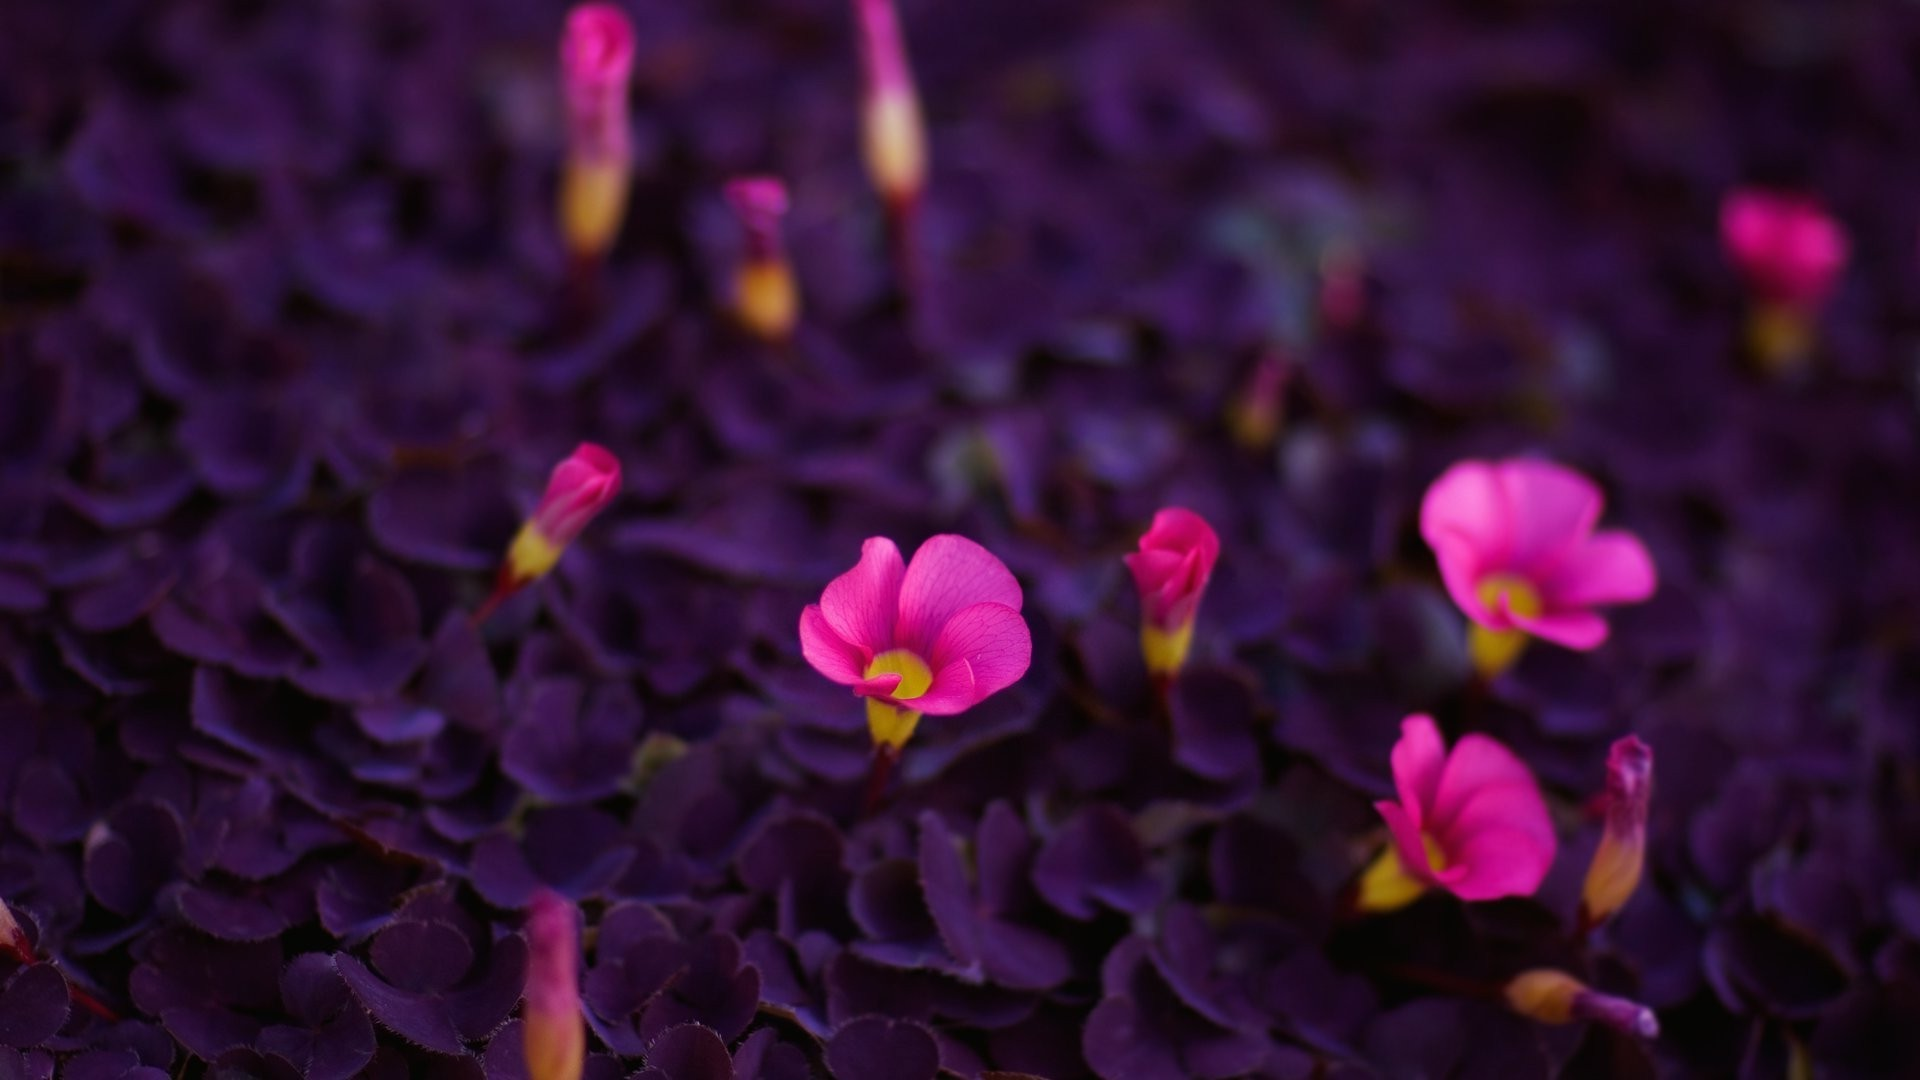 Pink Flowers With Purple Leaves Phone Wallpapers